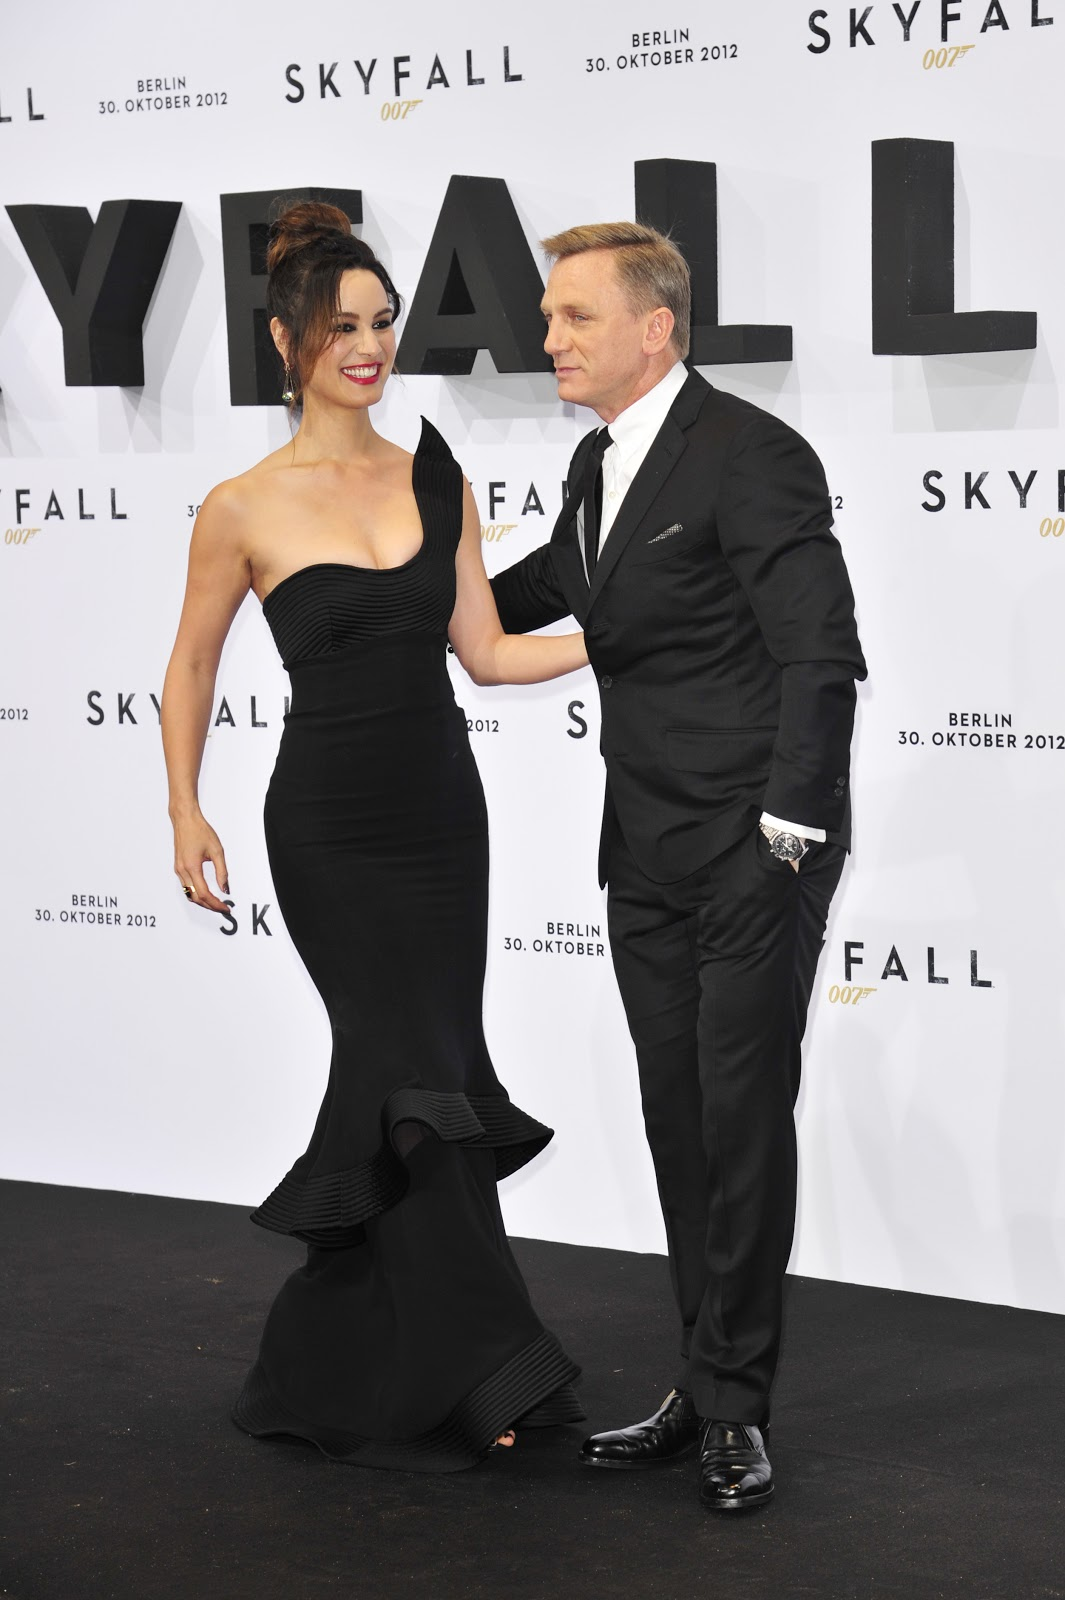 Berenice+Marlohe+-+Skyfall+Premiere+in+Berlin+October+30,+2012+-07.jpg